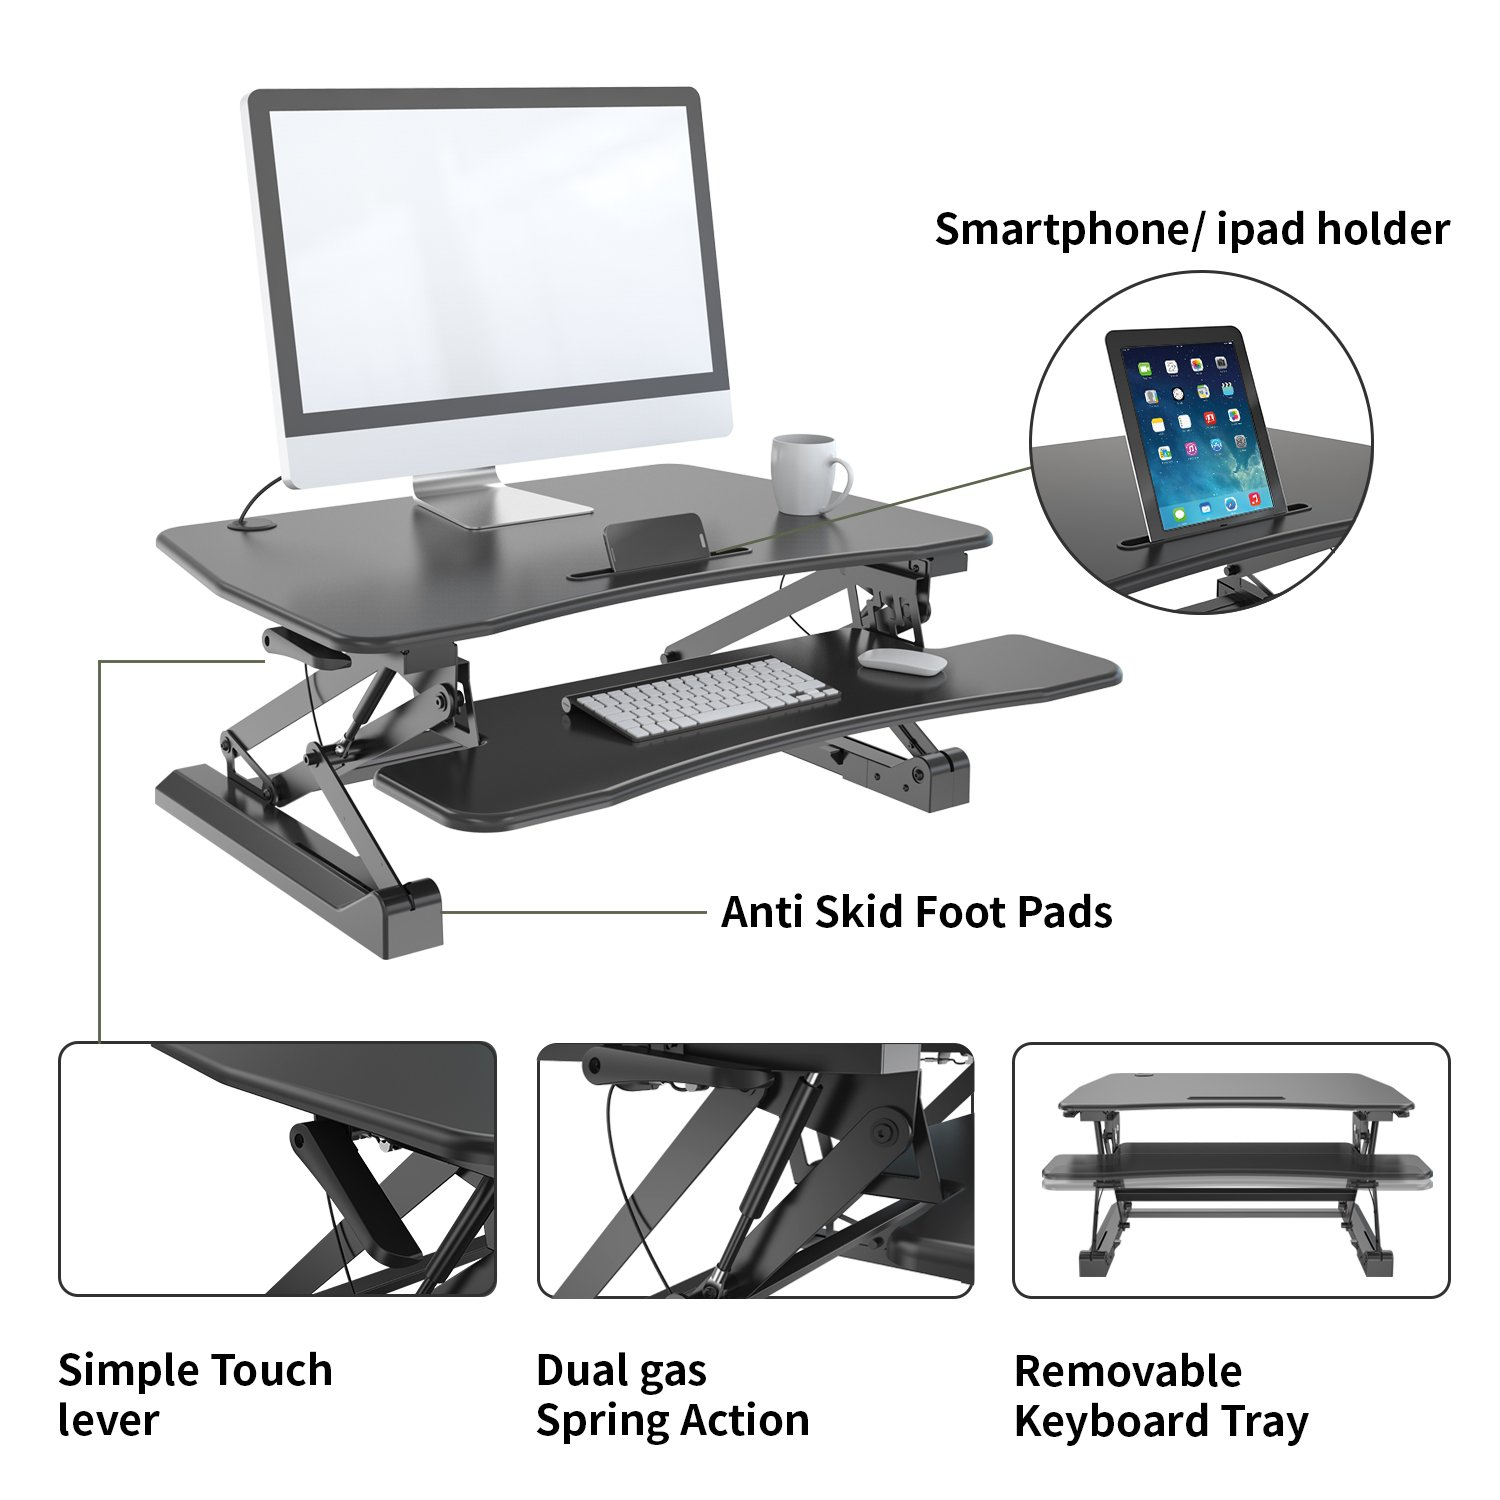 Zeal Height Adjustable Standing Desk Ergonomic Laptop Monitor Standing Dual Riser Sit to Stand Table Computer Workstation Desk (Black) by Zealdesk (Image #6)